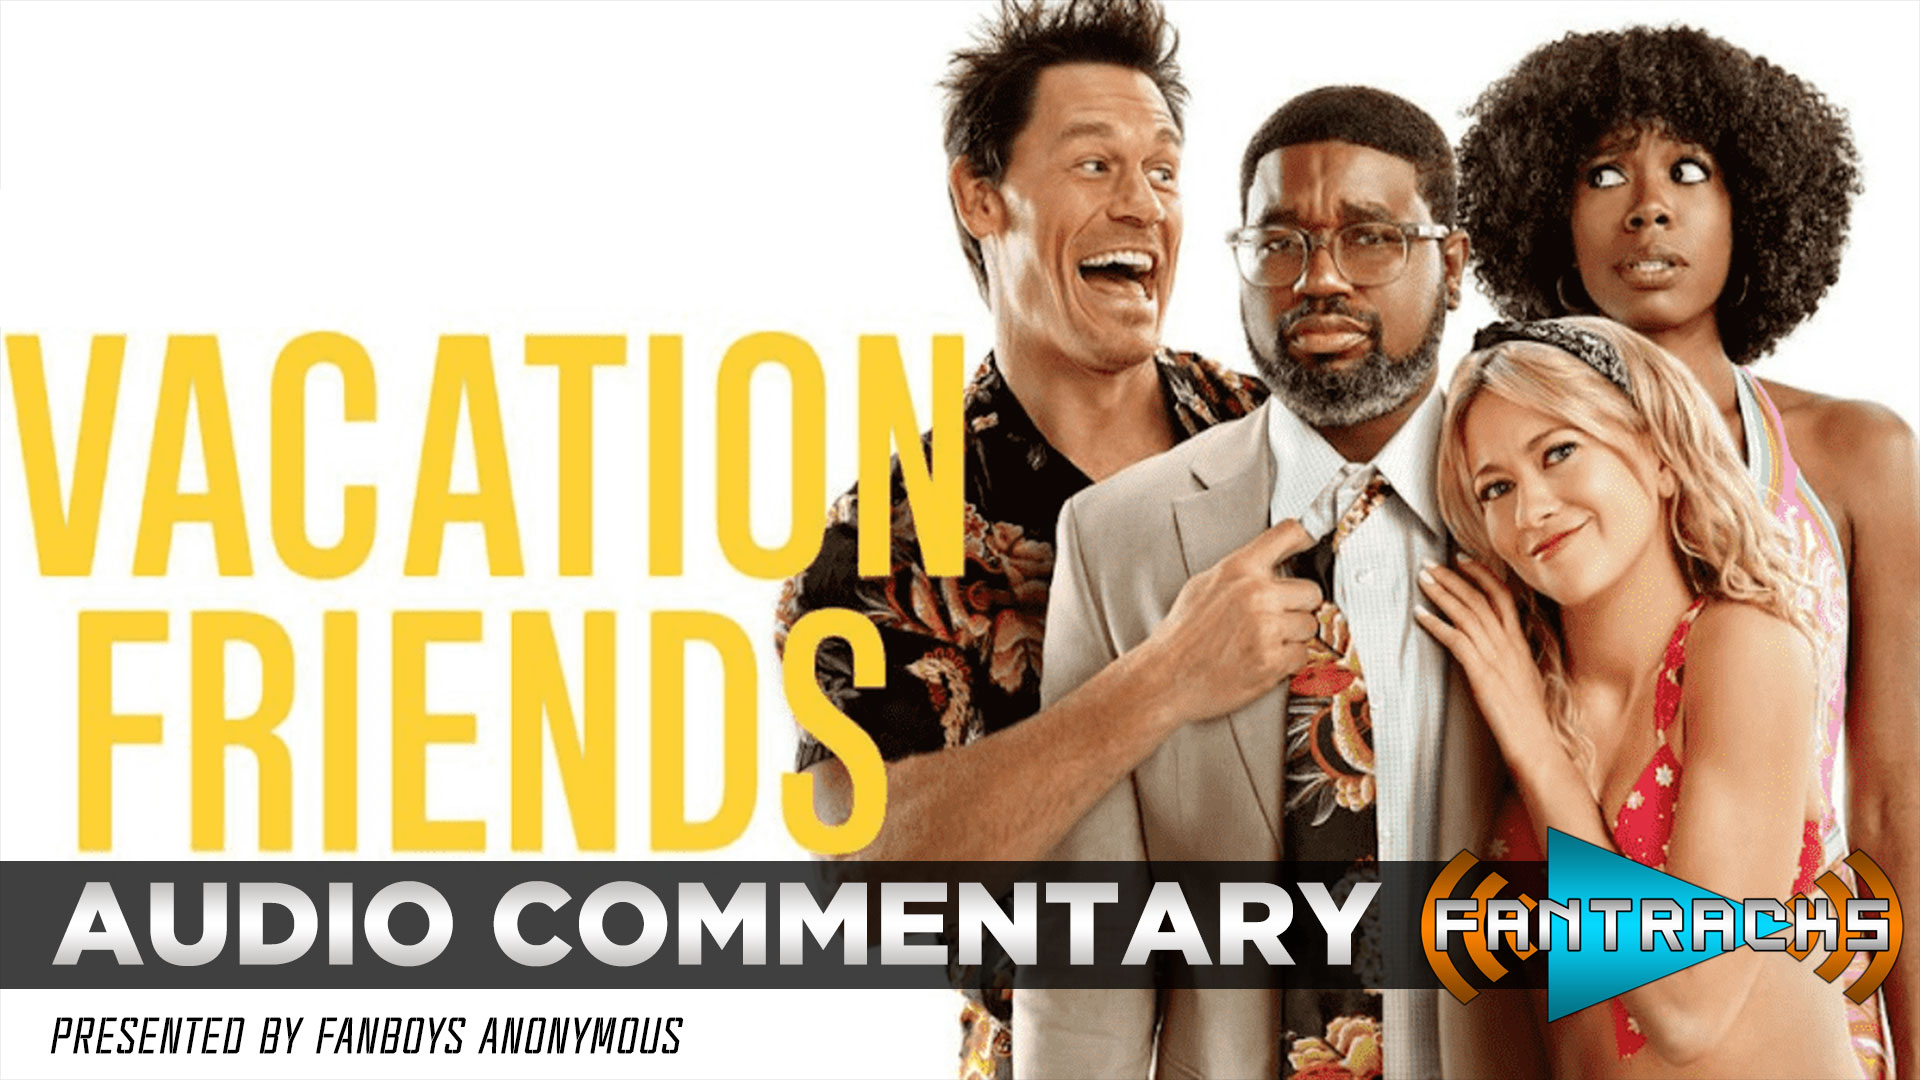 FanTracks Vacation Friends audio commentary